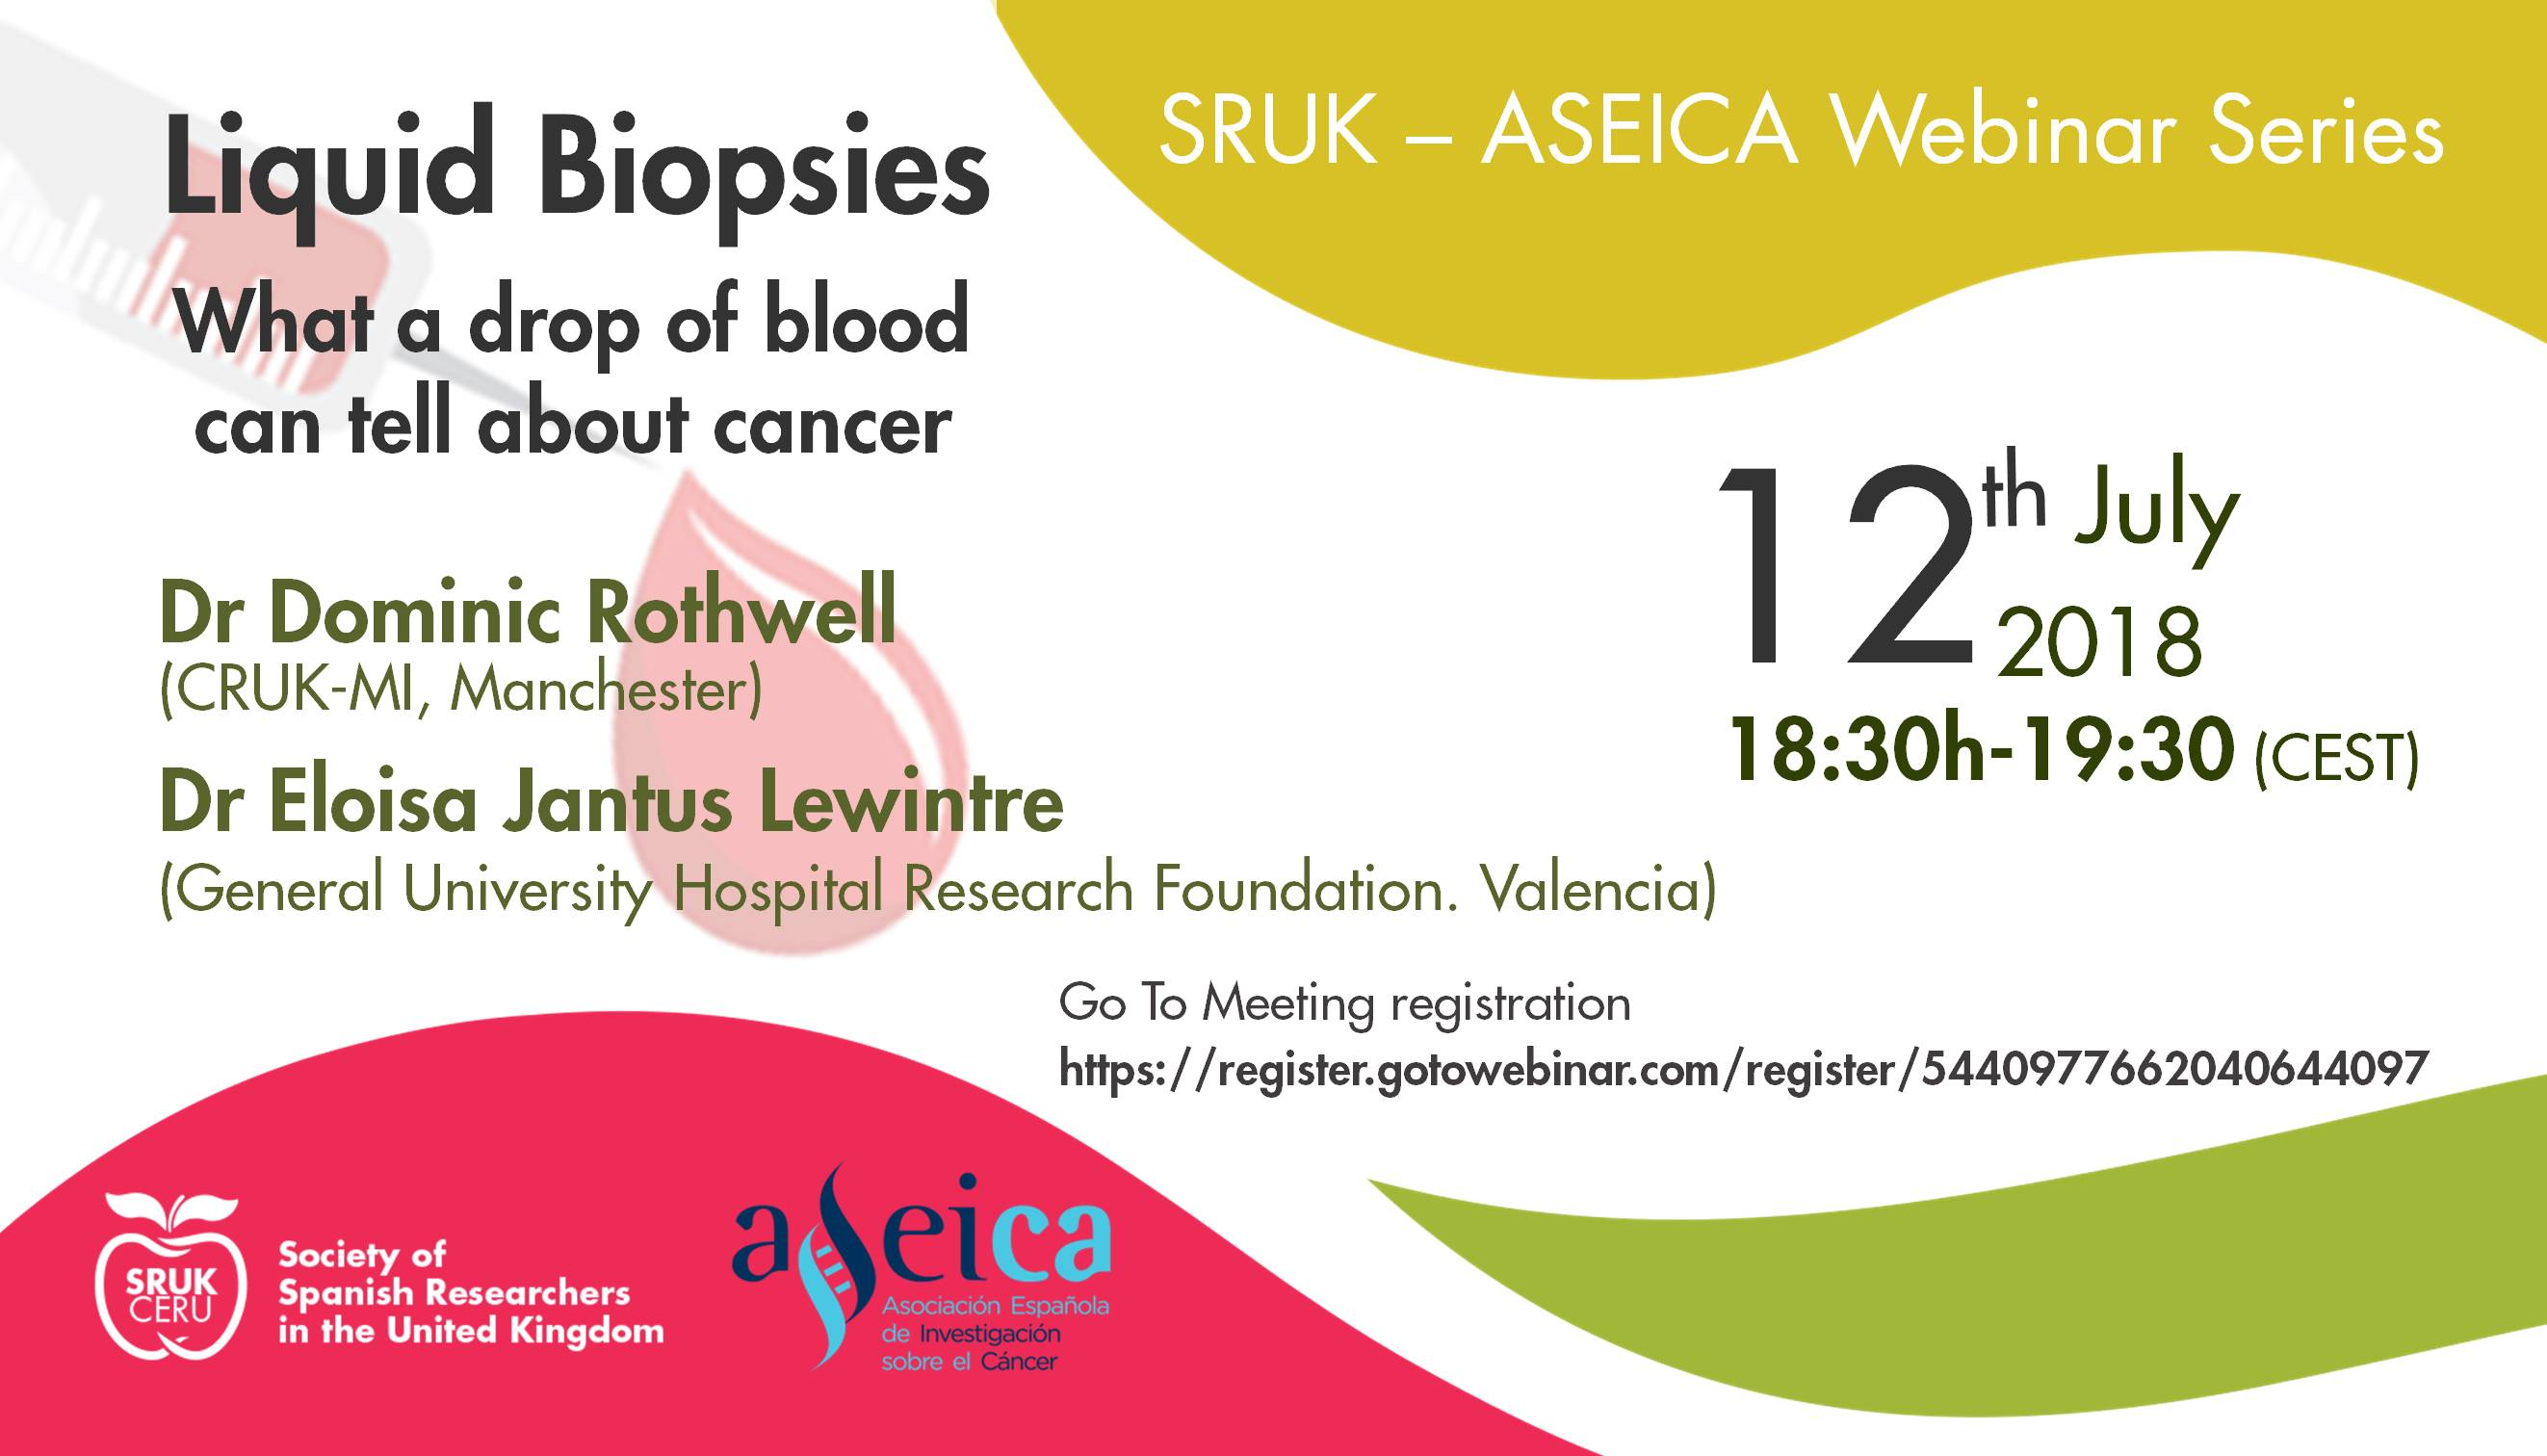 31May2018_SRUK-ASEICA_liquid biopsies webinar2